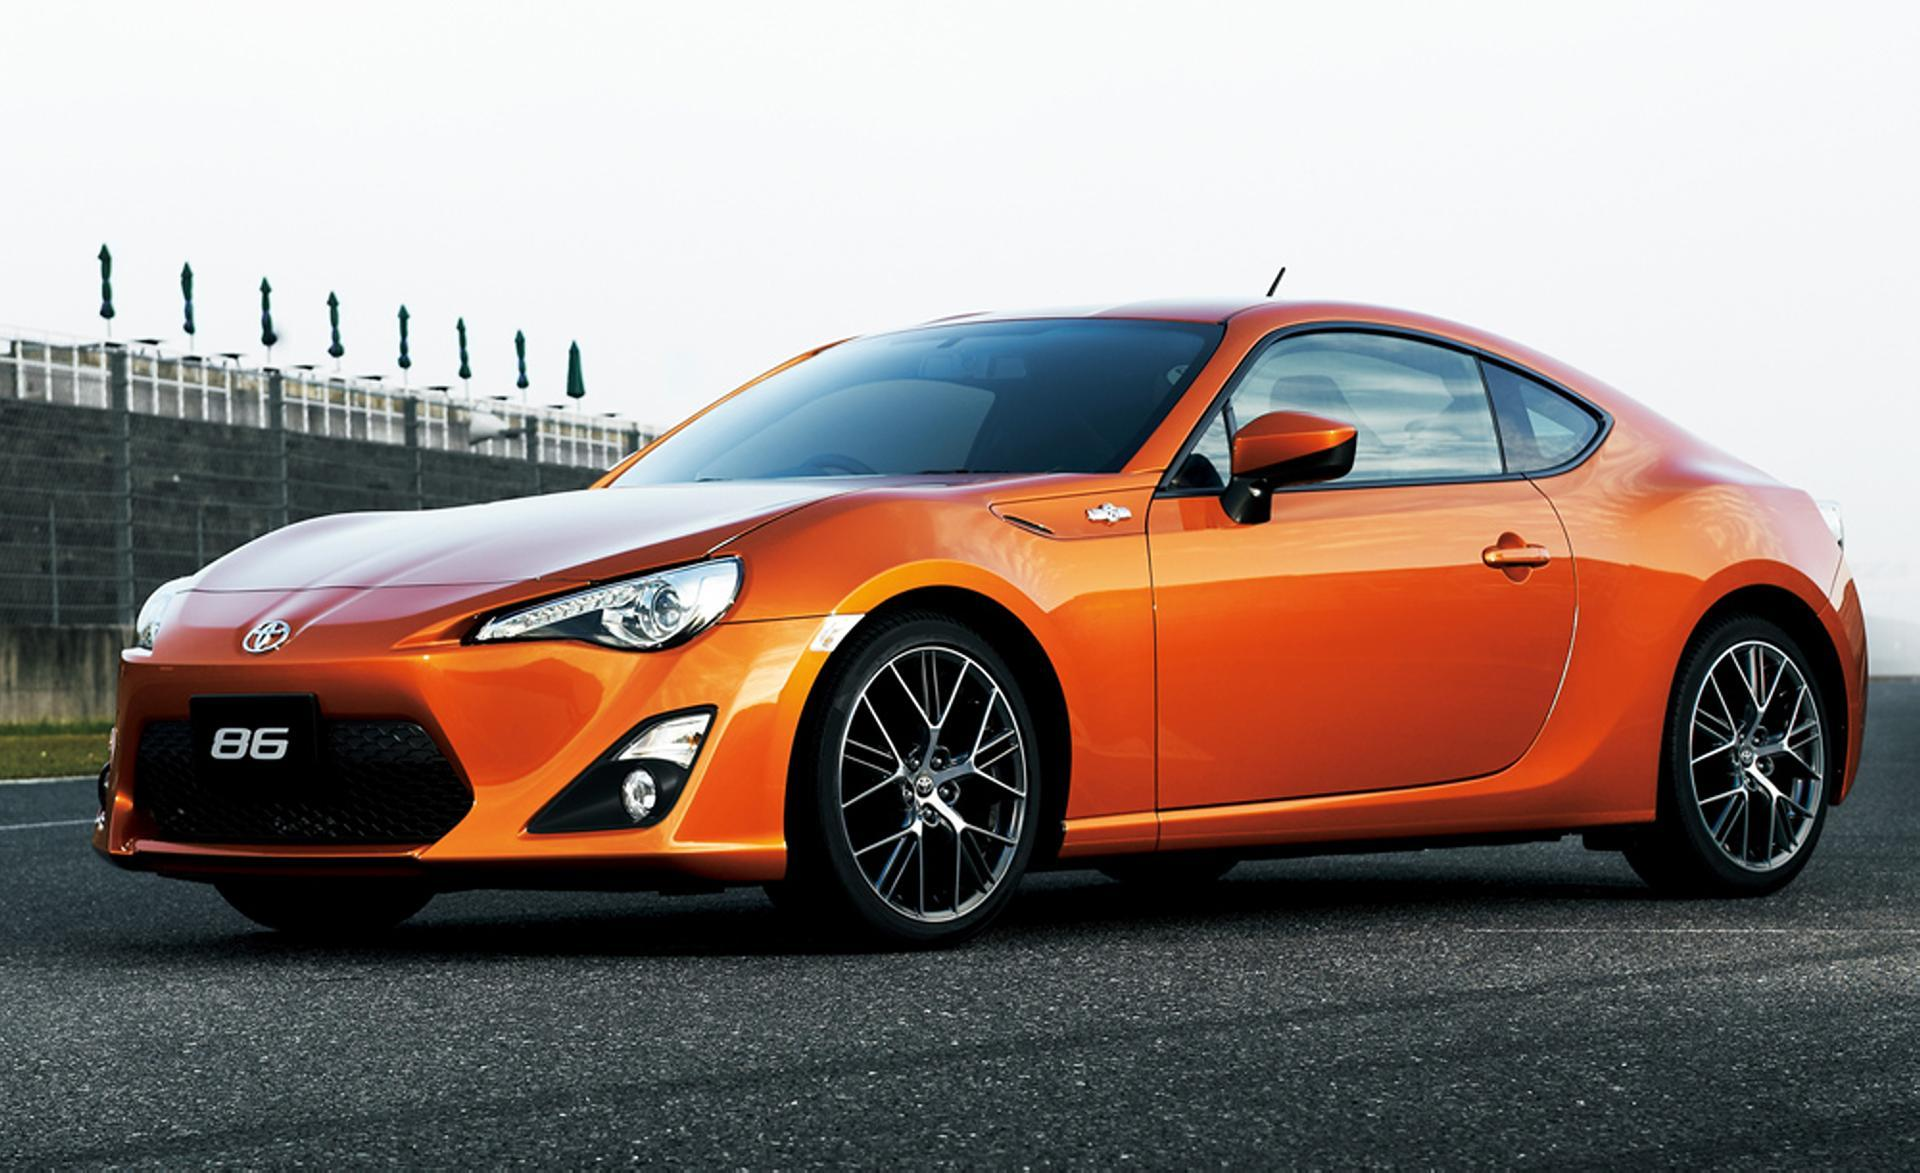 2012 Toyota GT 86 News and Information